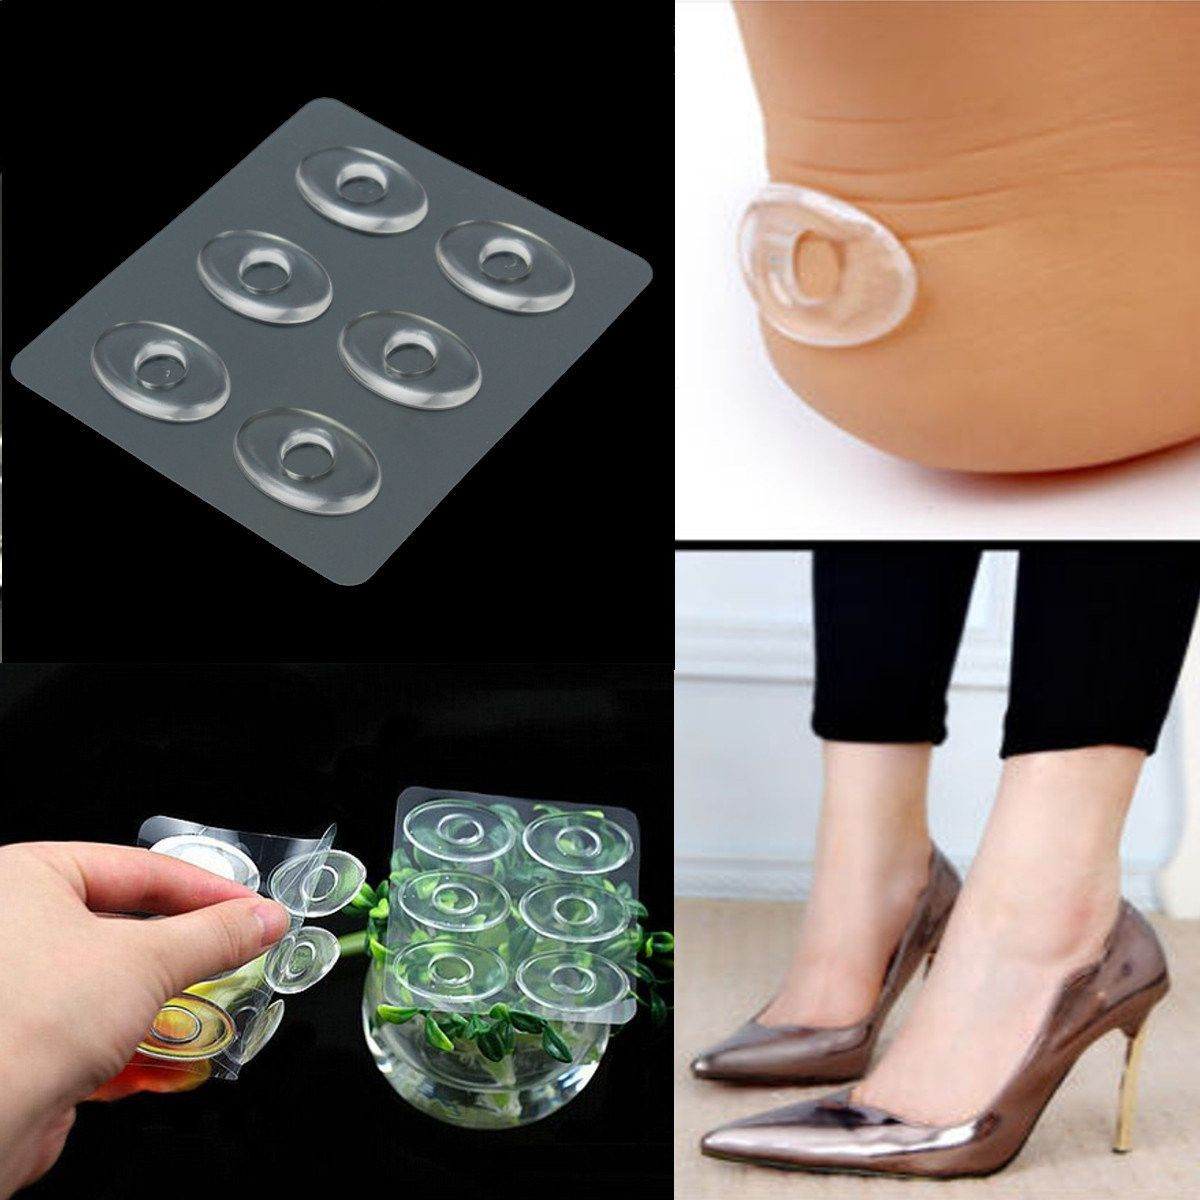 6pcs Silicone Gel Shoe Insole Inserts Pad Cushion Foot Care Heel Grips Liner Heel Grips Feet Care Gel Toes